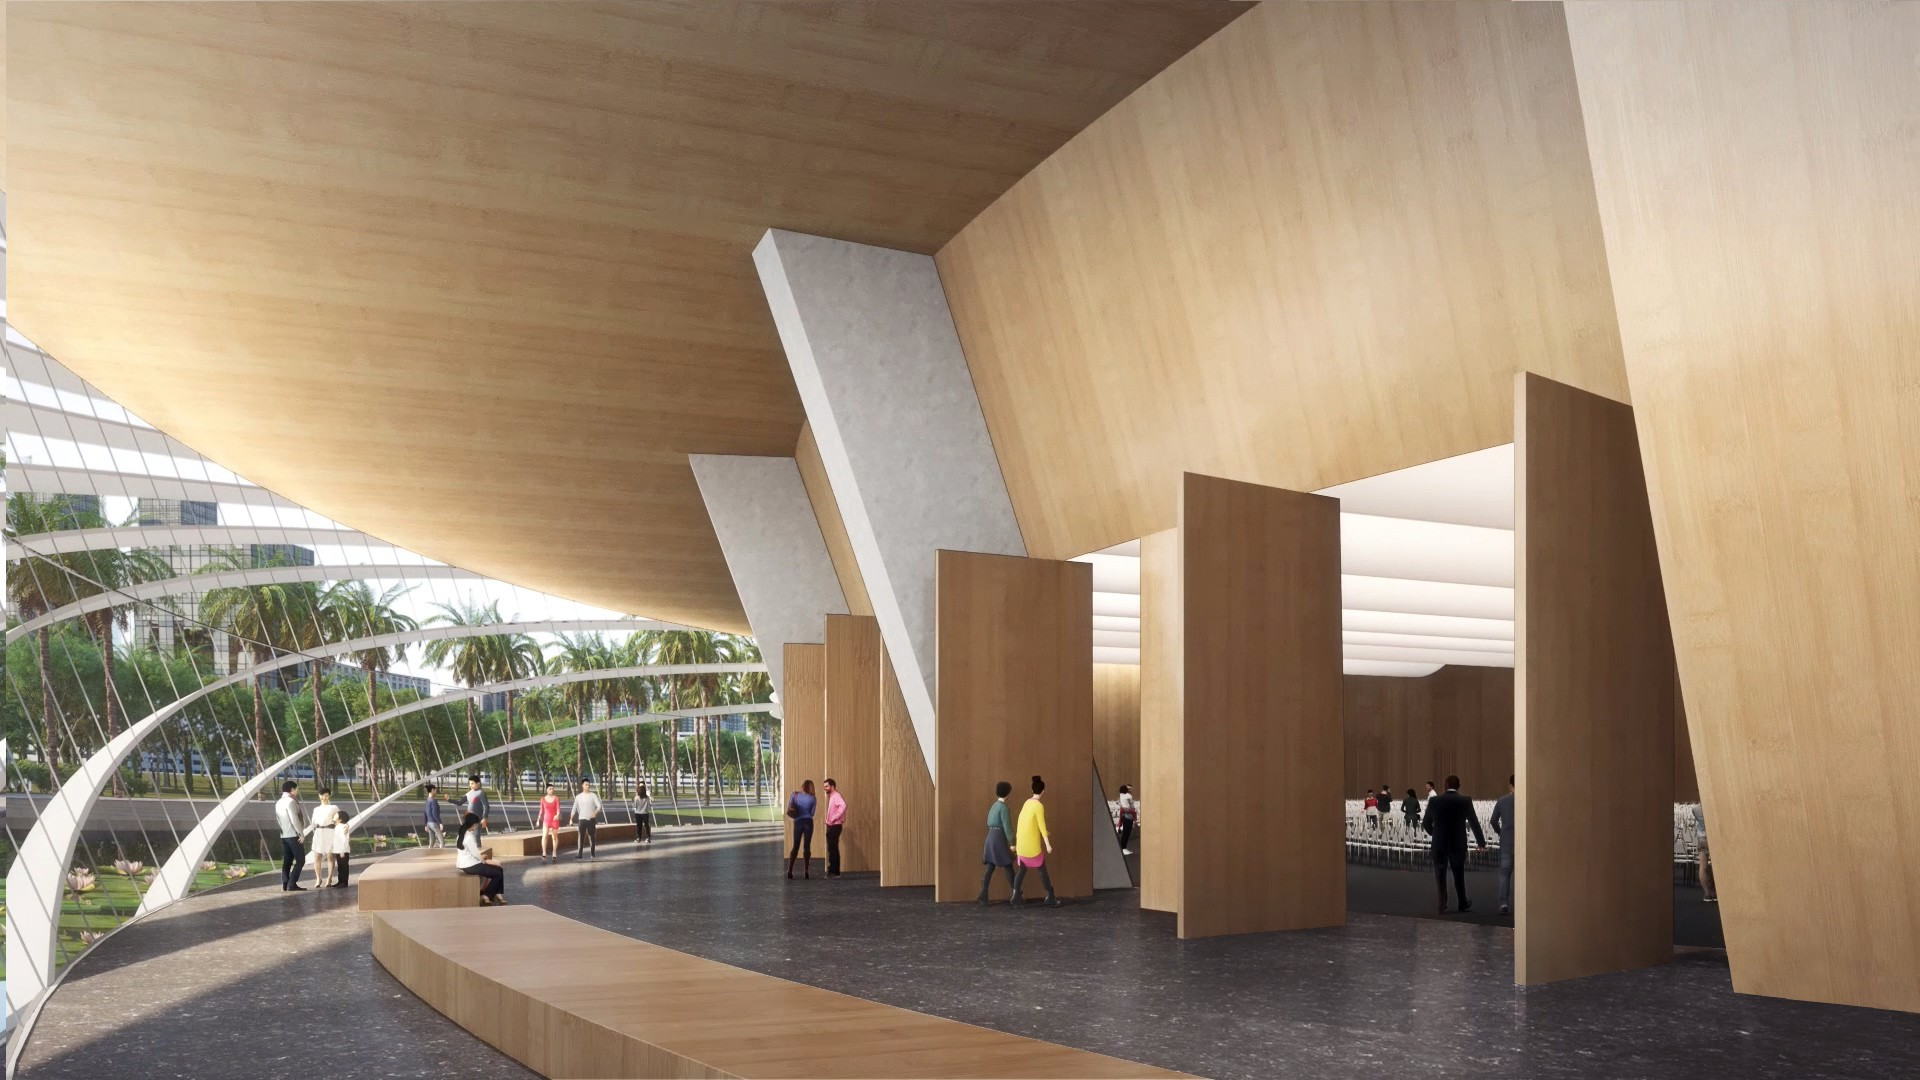 https://stevenholl.sfo2.digitaloceanspaces.com/uploads/projects/project-images/7ViewInteriorConferenceCenterLobby02.jpg